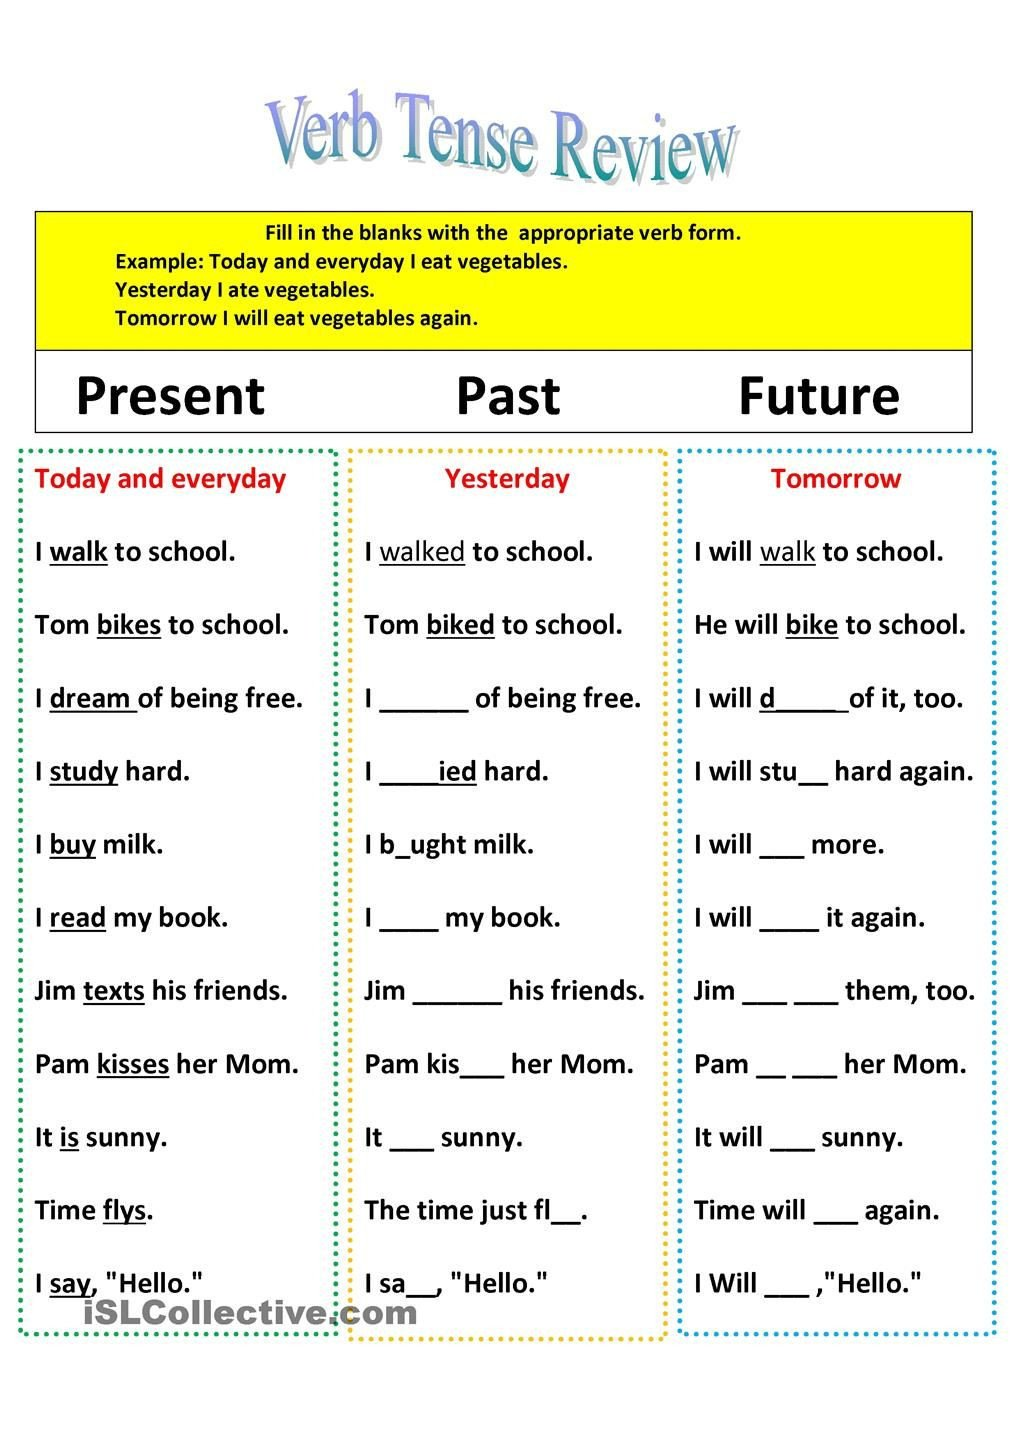 Future Tense Verbs Worksheet Revision Of Verb Tenses Present Past and Future